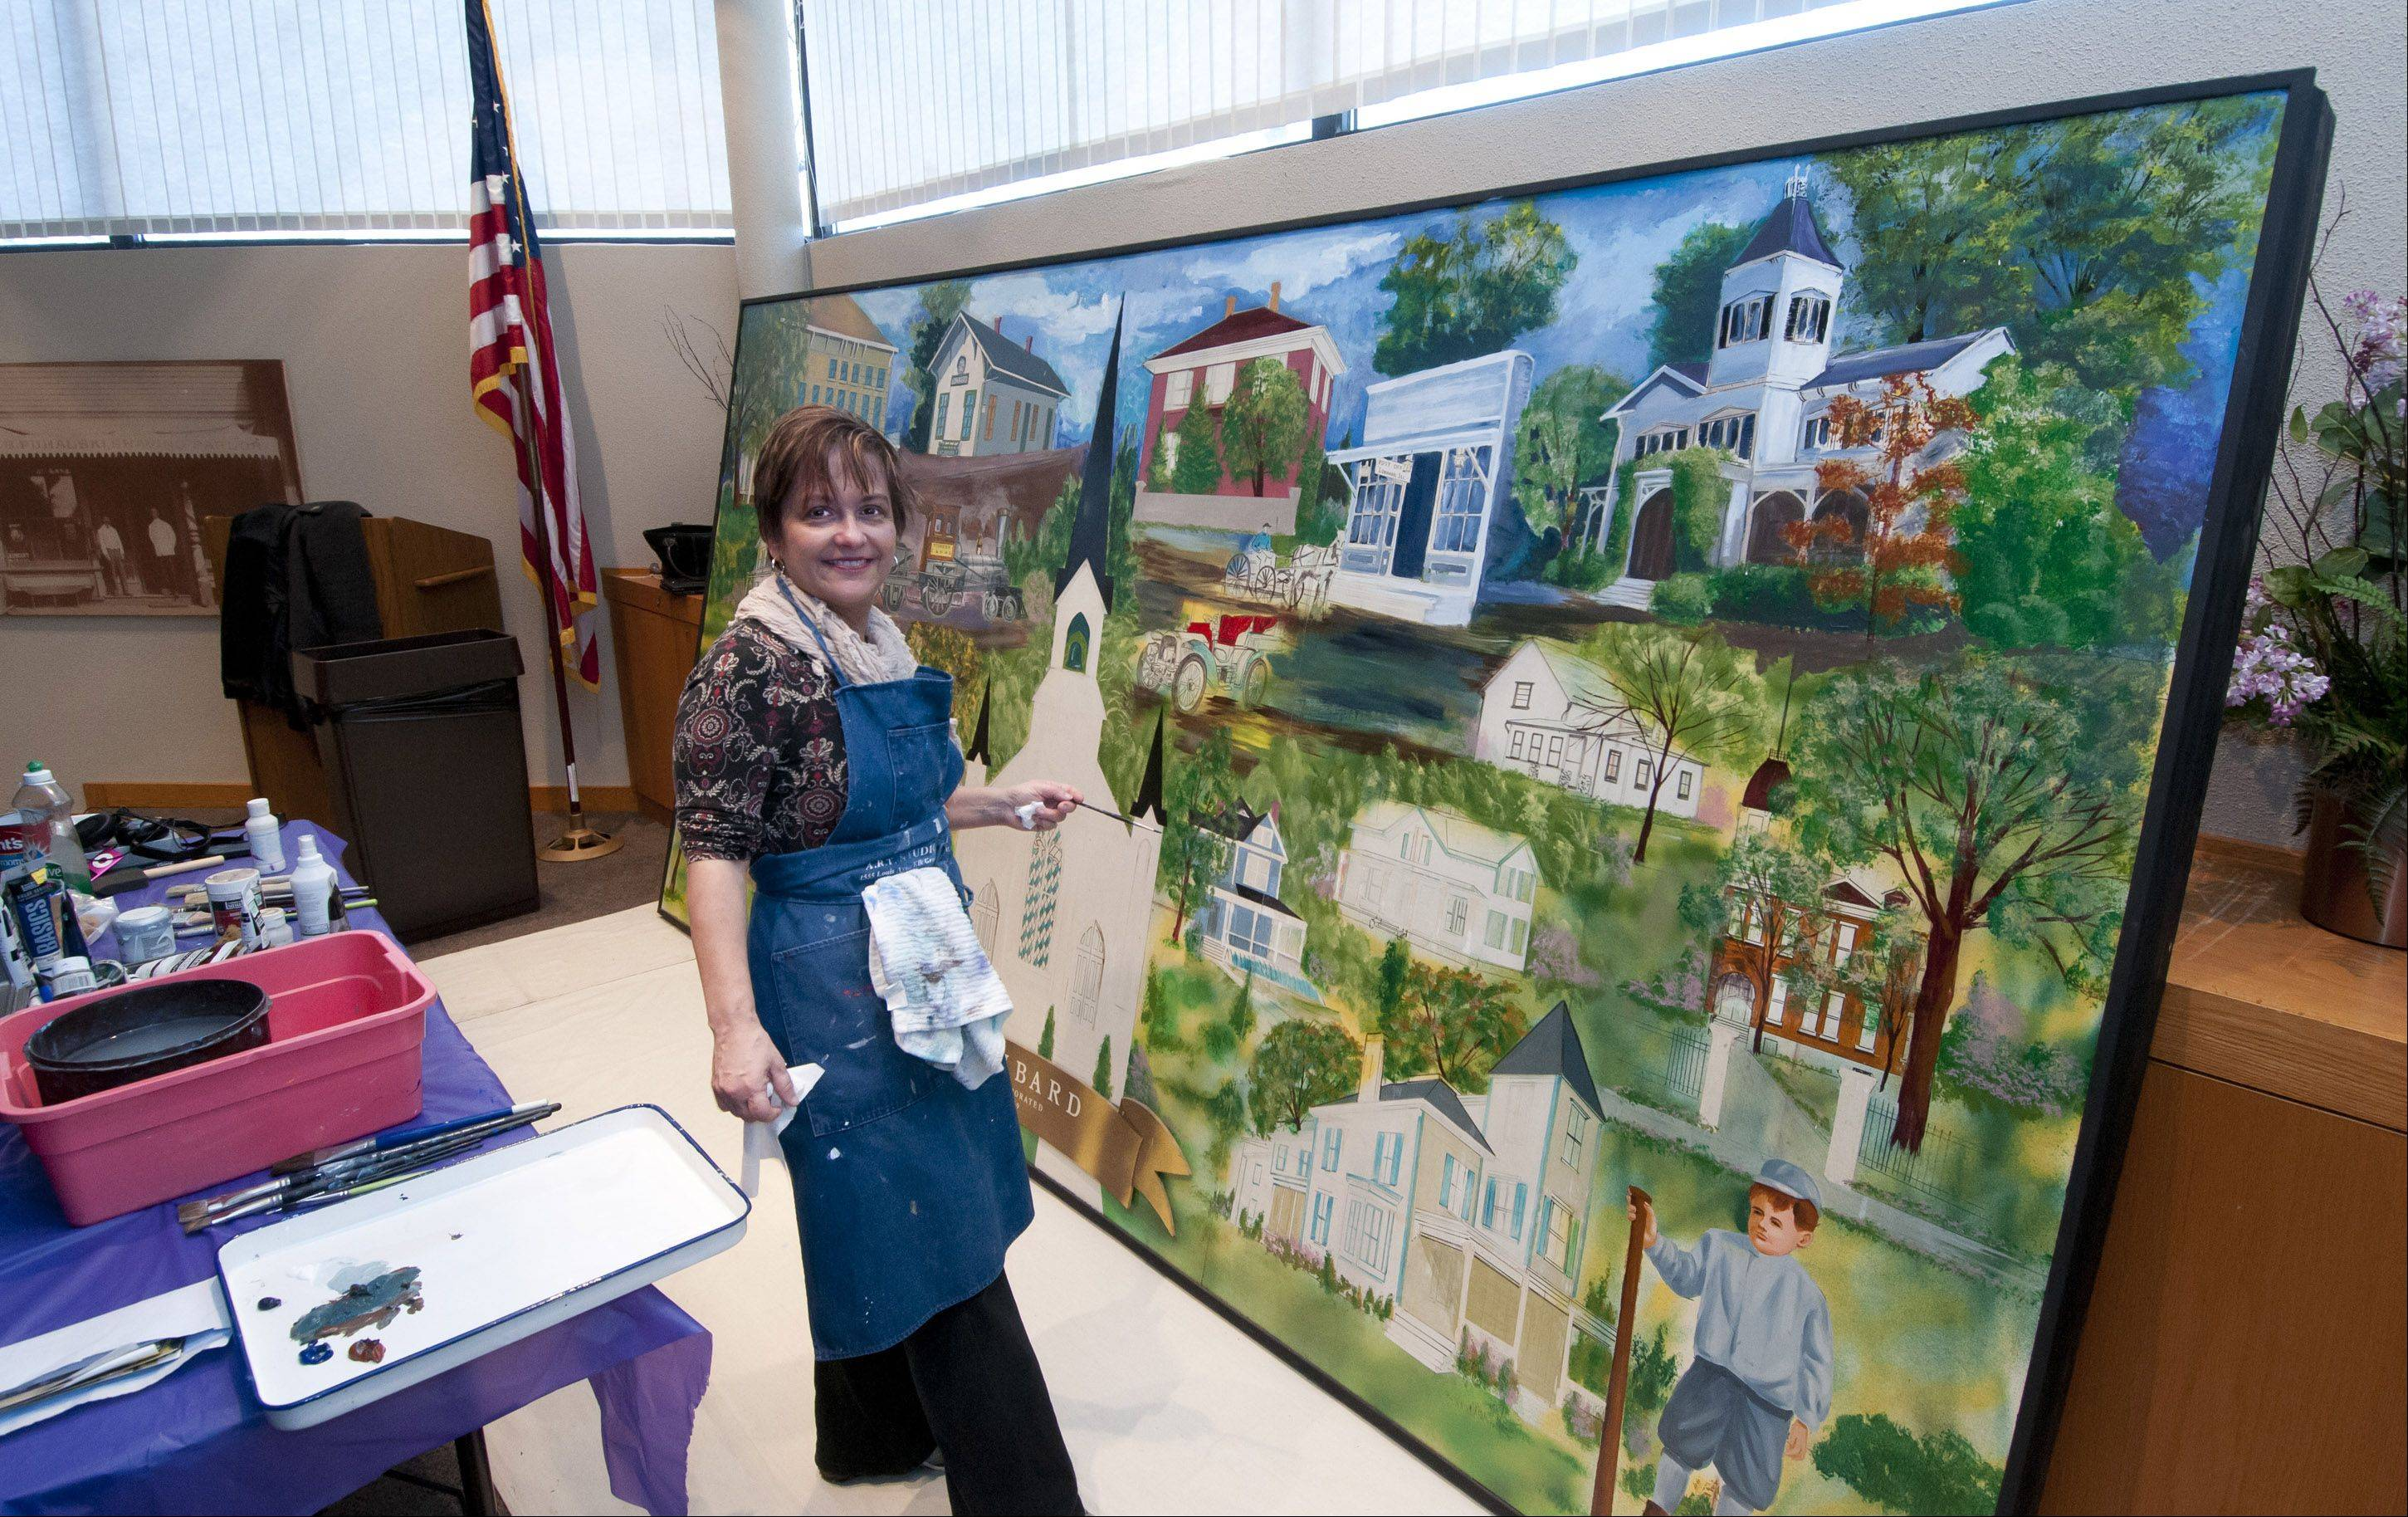 Lombard Trustee Laura Fitzpatrick has spent more than 30 hours working to finish this painting of historic sites in Lombard by the late muralist Vern Milem. Her work has drawn criticism from Brian Diskin of Wheaton, a freelance cartoonist who teaches at the College of DuPage.